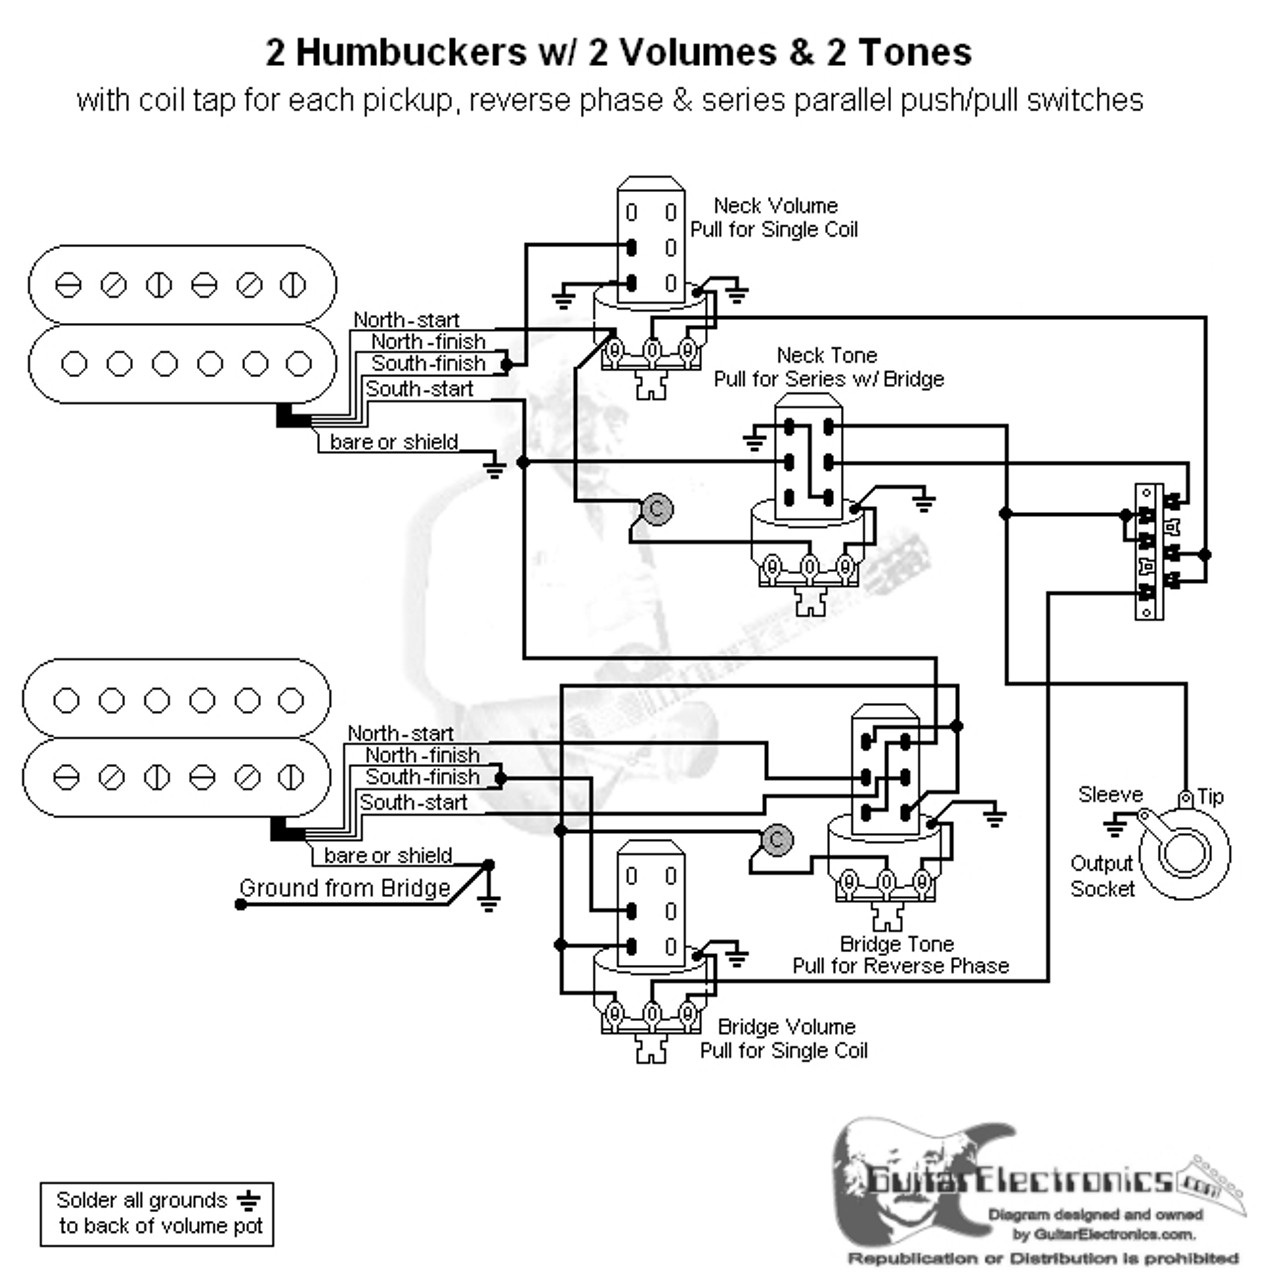 2 hbs 3 way lever 1 vol 2 tones coil tap series parallel phase les paul 2 vol 2 tone guitar ground wiring diagram [ 1280 x 1280 Pixel ]